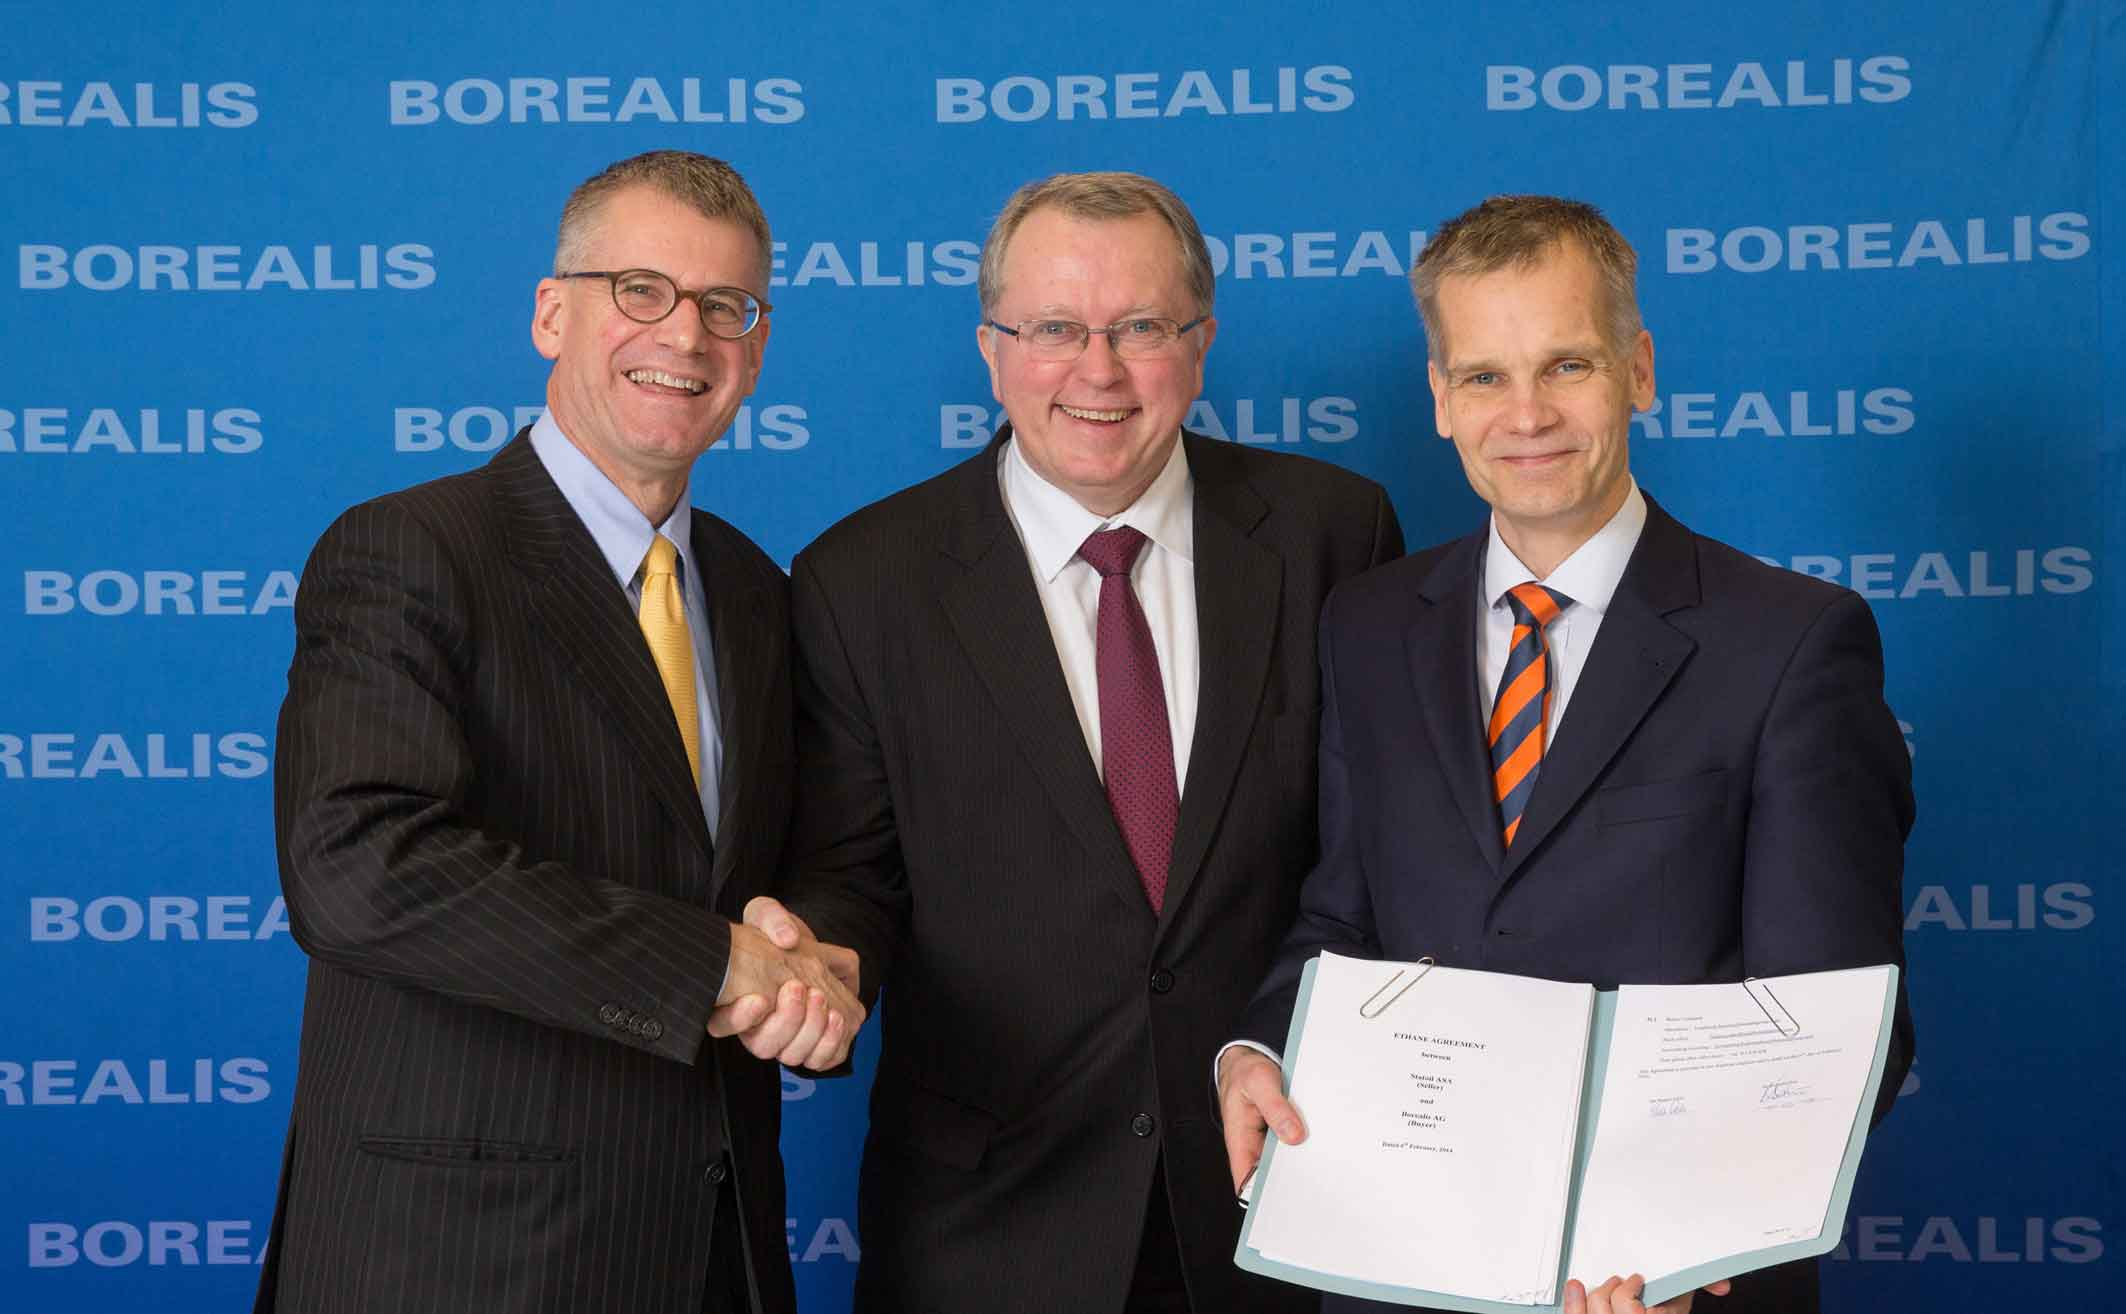 Borealis and Statoil to renew their long term ethane sourcing contract